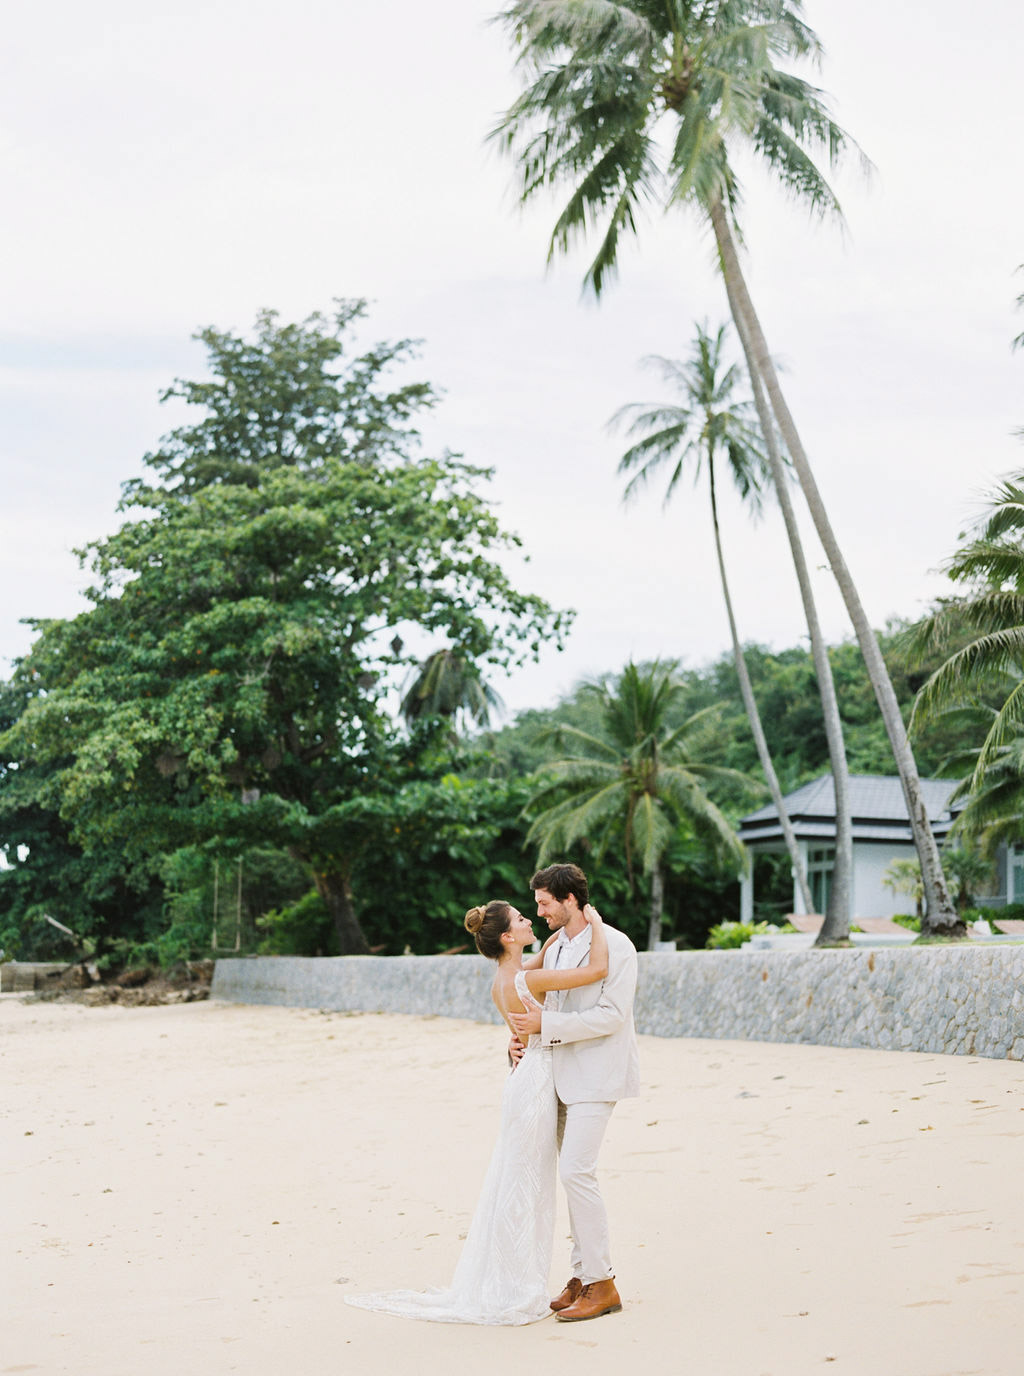 Thailand Wedding Venues Destination Koh Yao Noi By Fine Art Film Wedding Photographer Sheri McMahon-00049.jpg